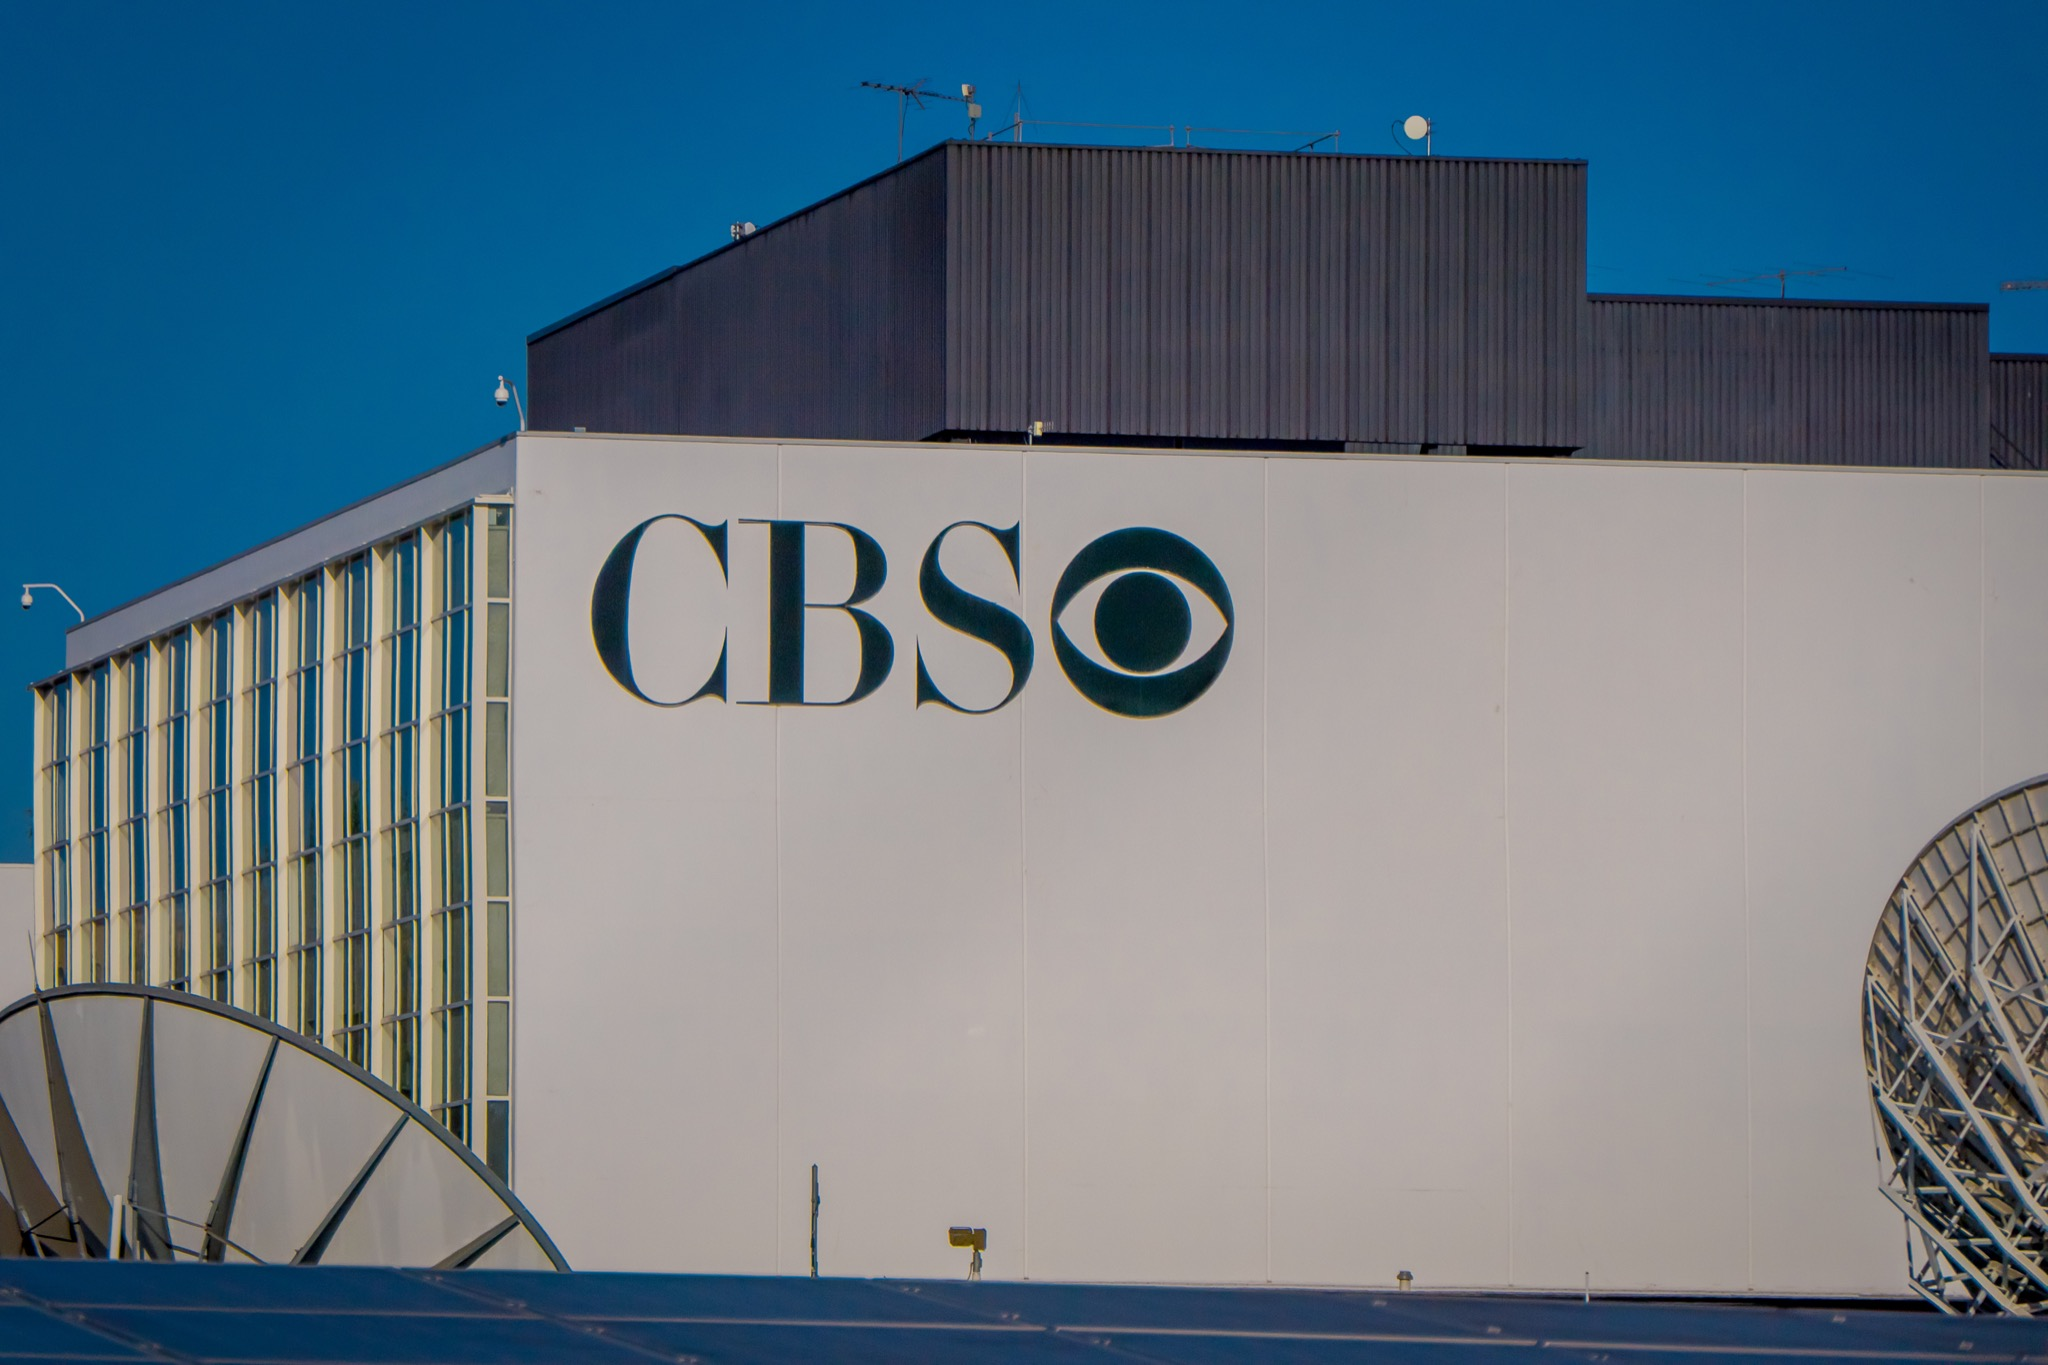 Los Angeles, California, USA, AUGUST, 20, 2018: CBS logo on a building in Los Angeles, California